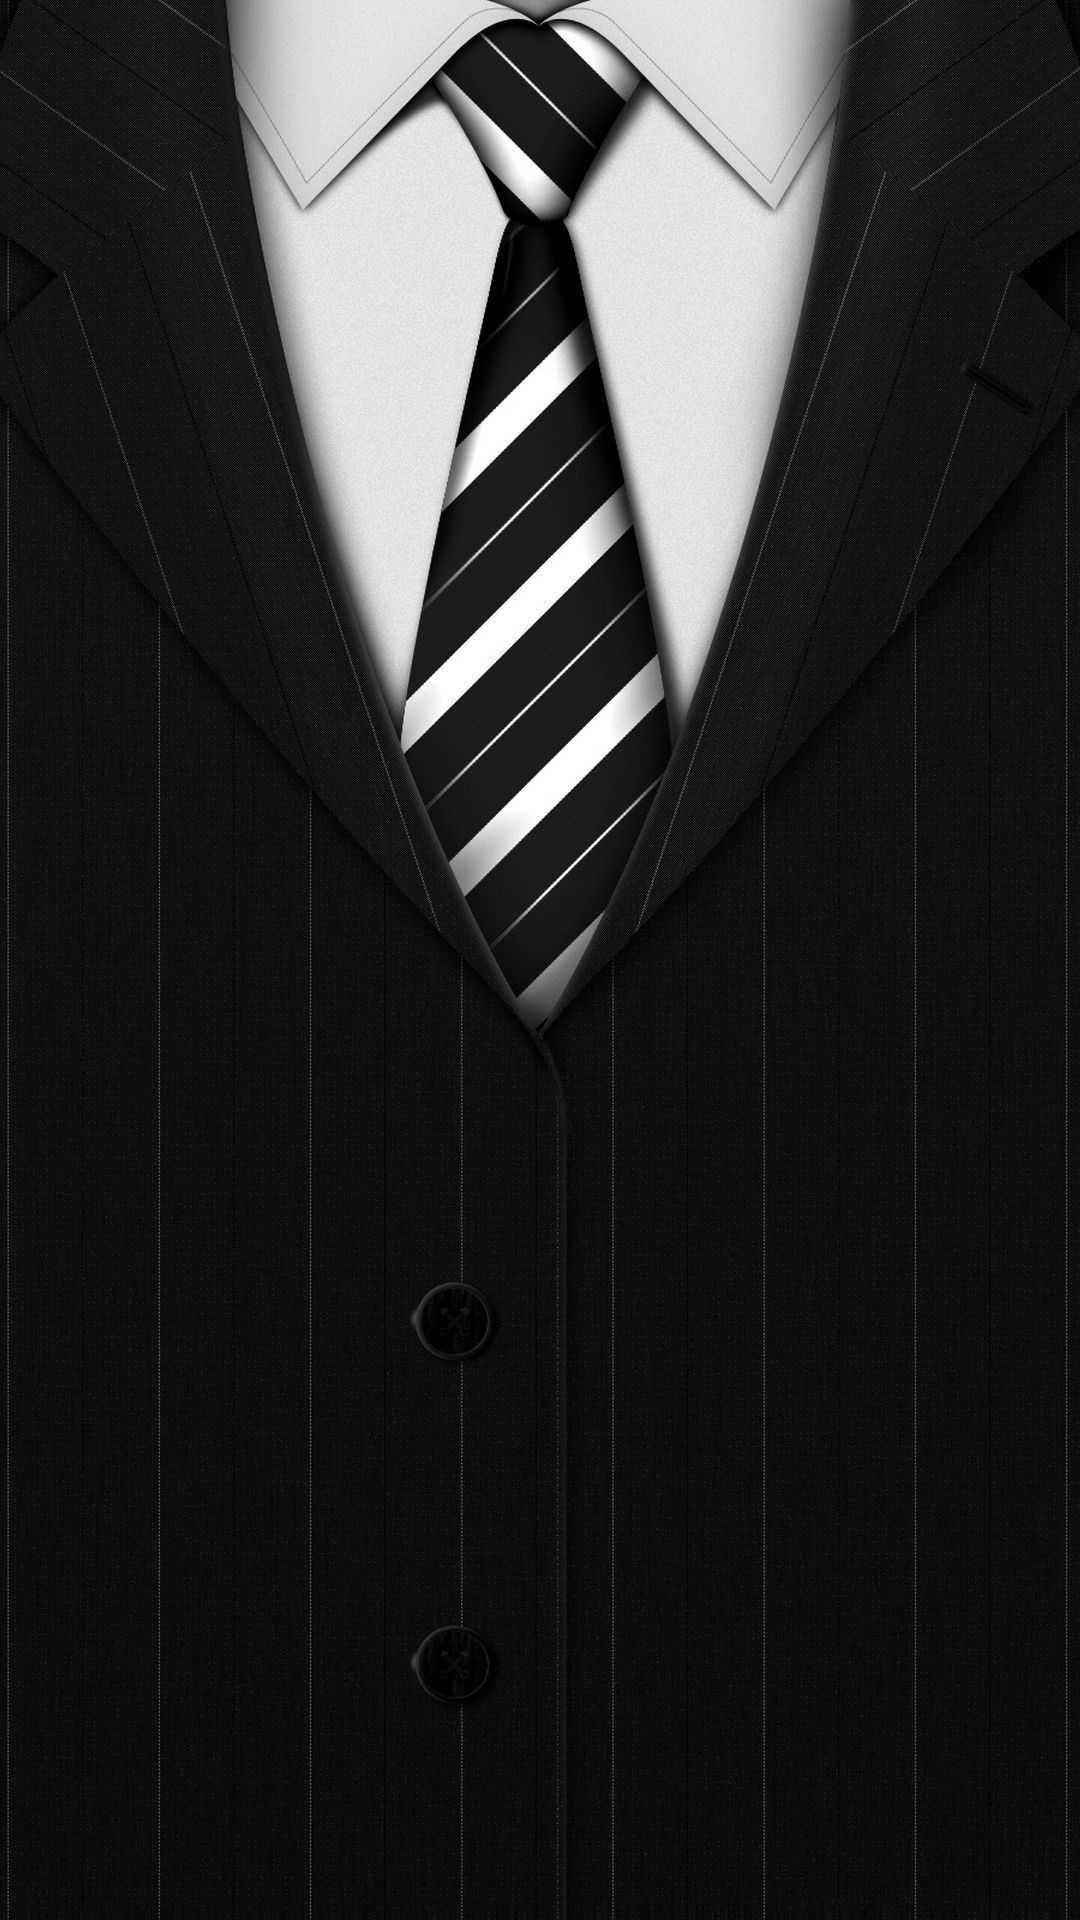 1080x1920 Abstract Black Suit Tie Background iPhone 8 wallpaper